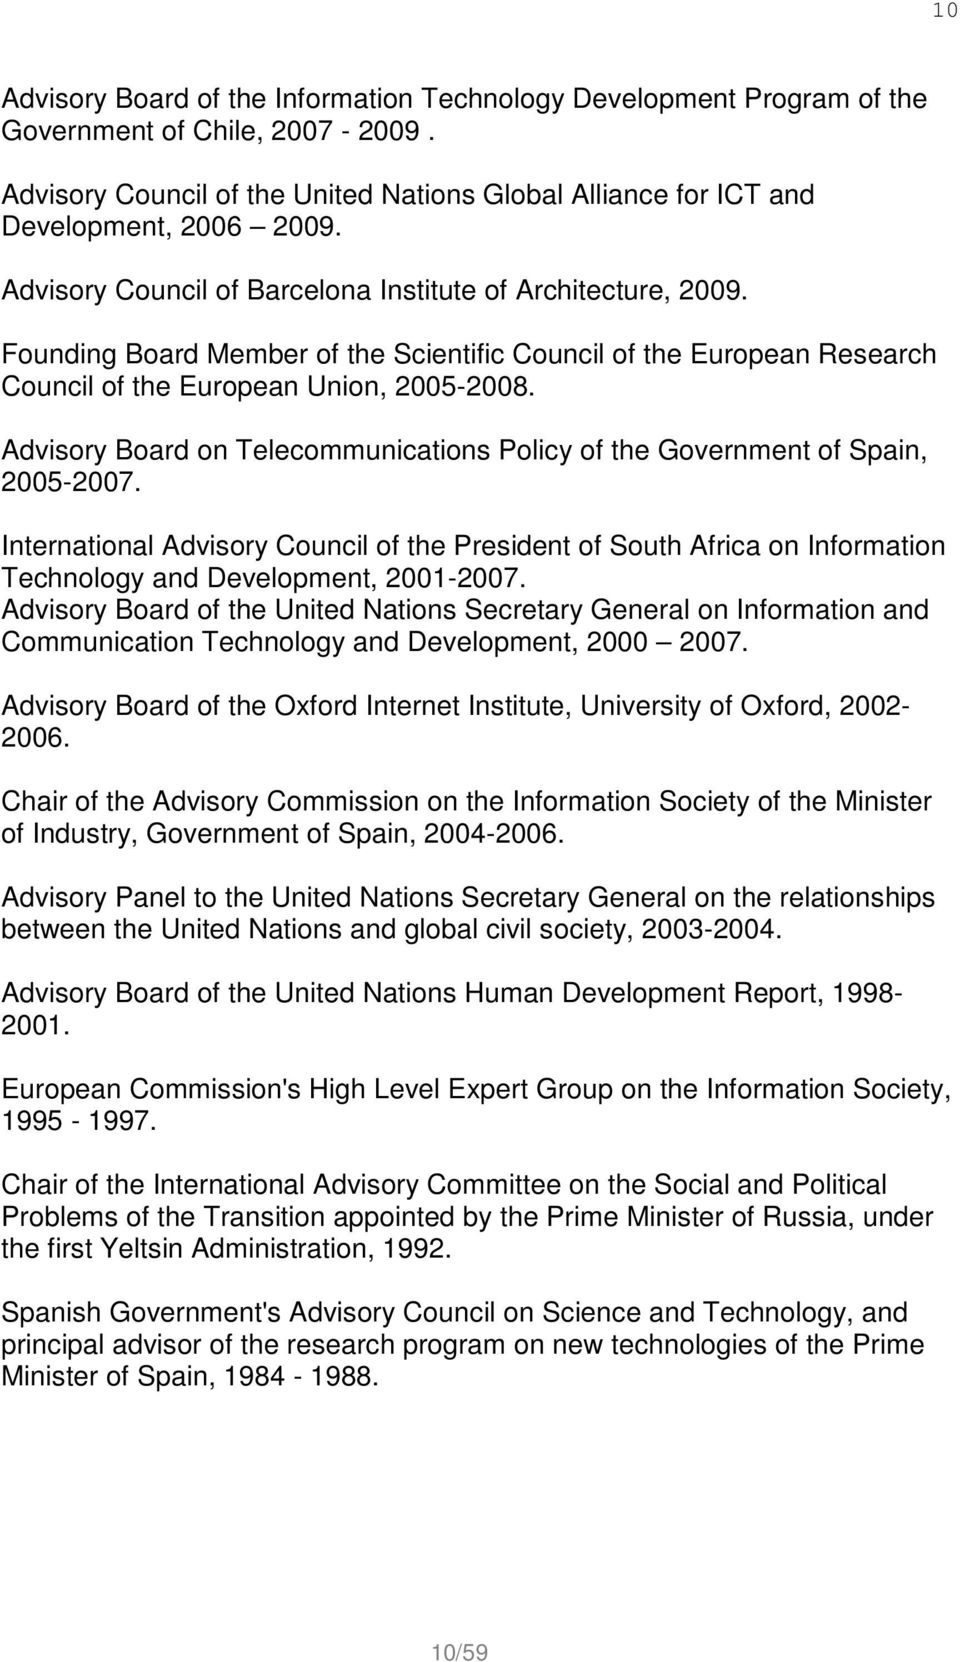 Advisory Board on Telecommunications Policy of the Government of Spain, 2005-2007. International Advisory Council of the President of South Africa on Information Technology and Development, 2001-2007.